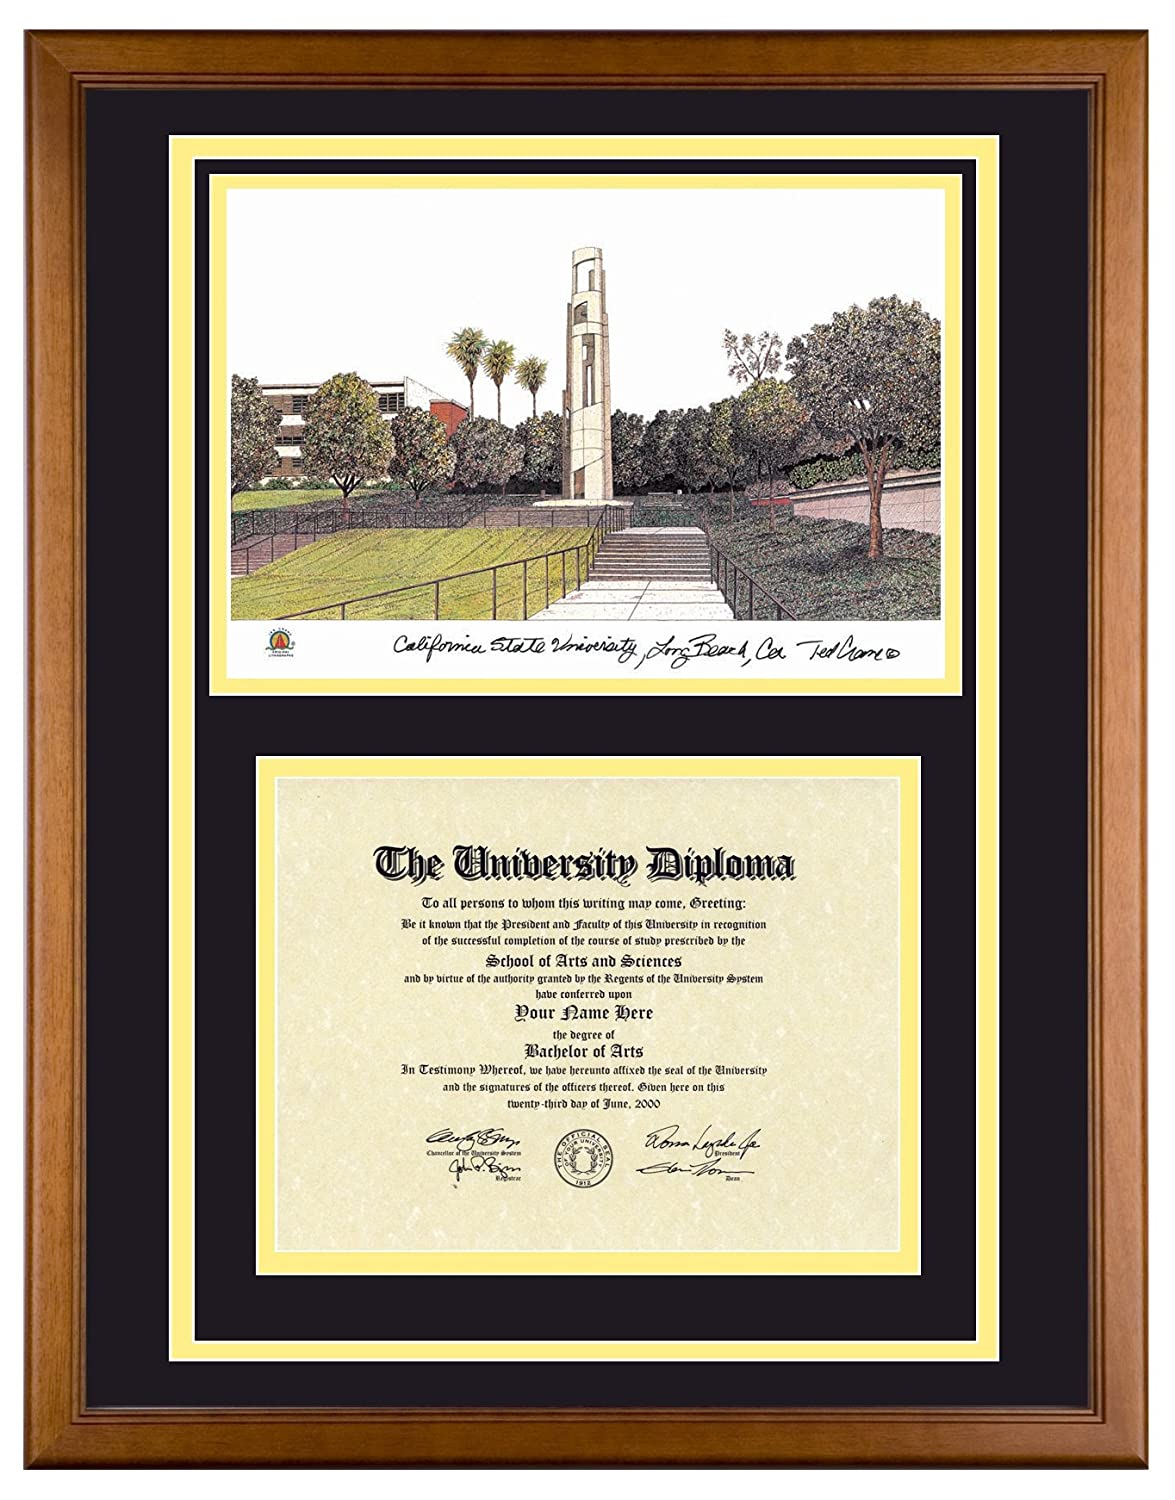 Amazon.com: CAL STATE LONG BEACH Diploma Frame with Artwork in Standard Black Frame: Posters & Prints